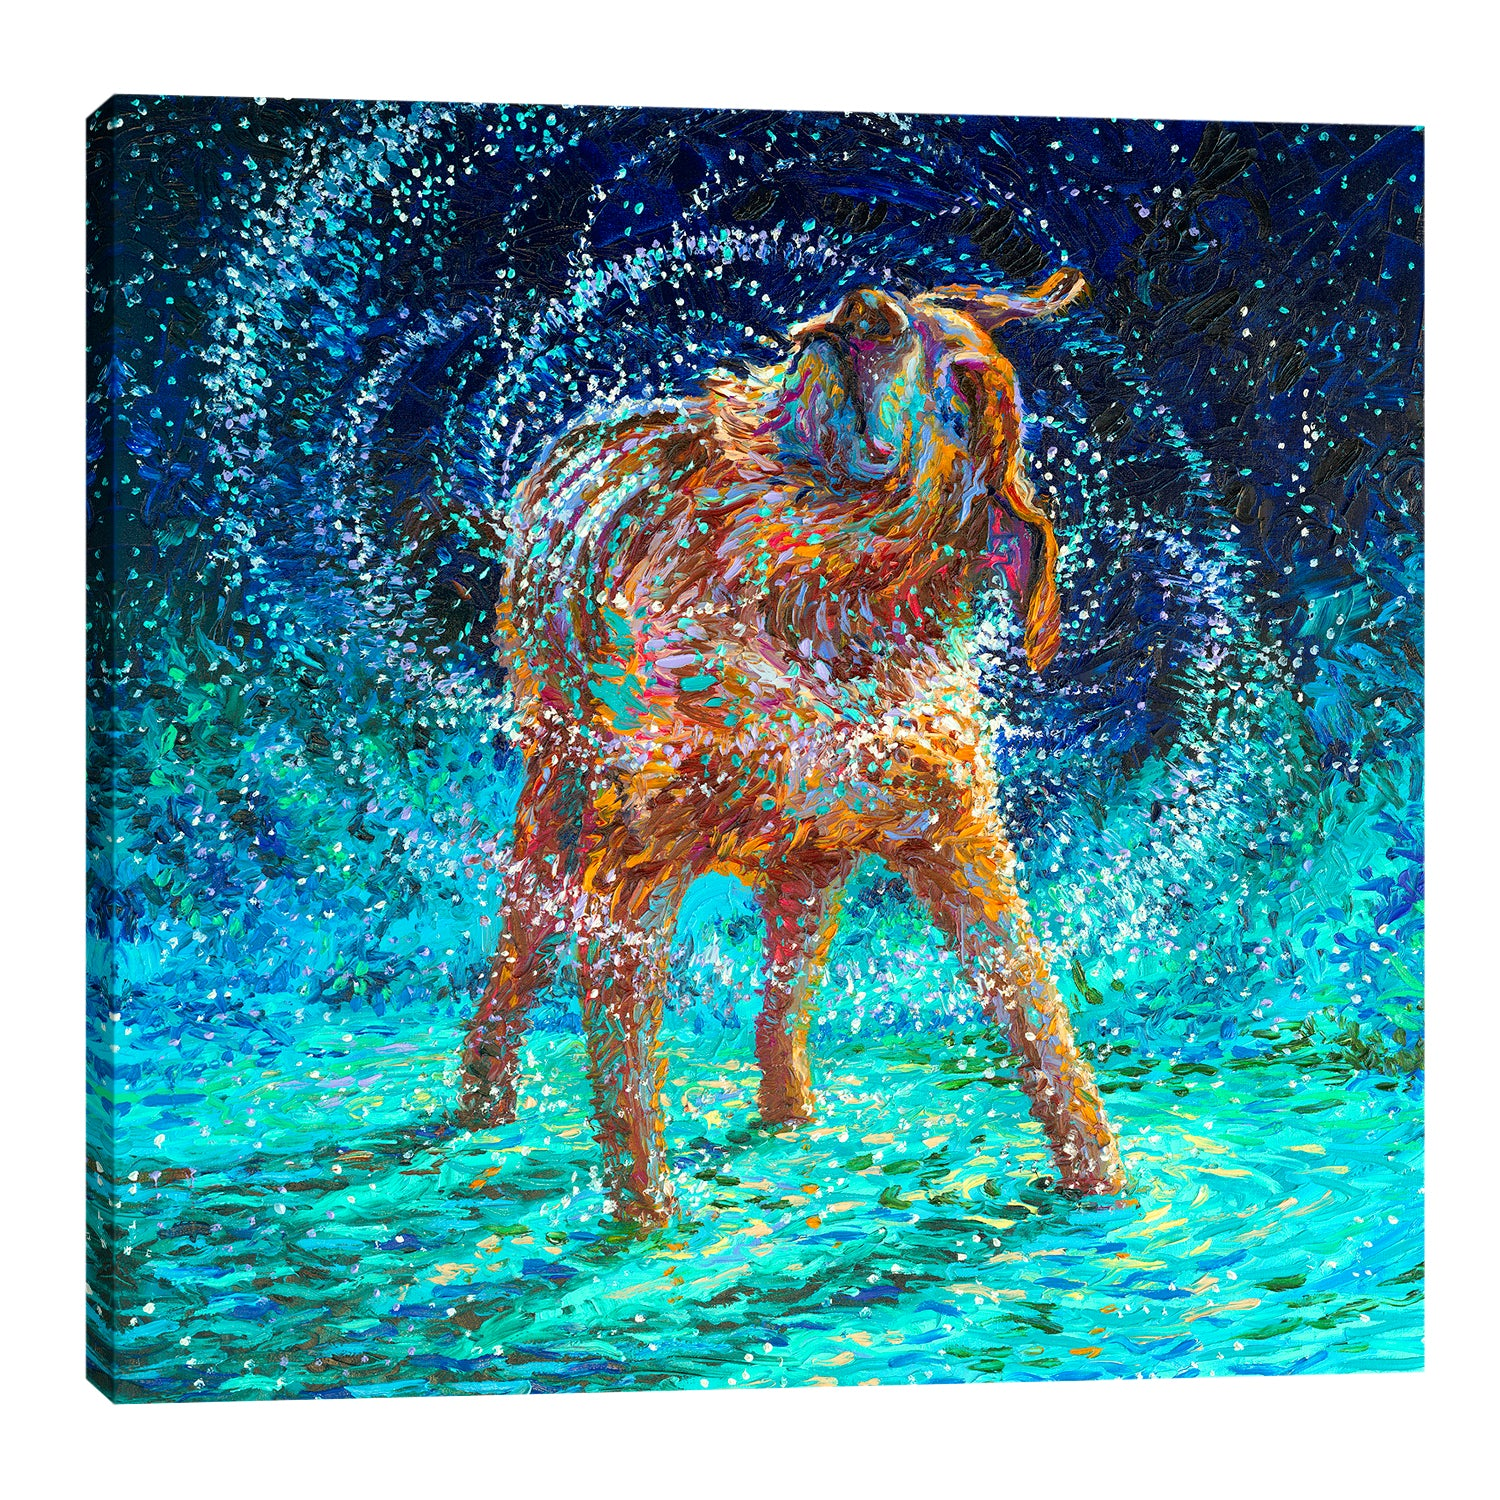 Iris-Scott,Modern & Contemporary,Animals,animals,animal,dogs,dog,wagging,shaking,water drops,teal,splatter,